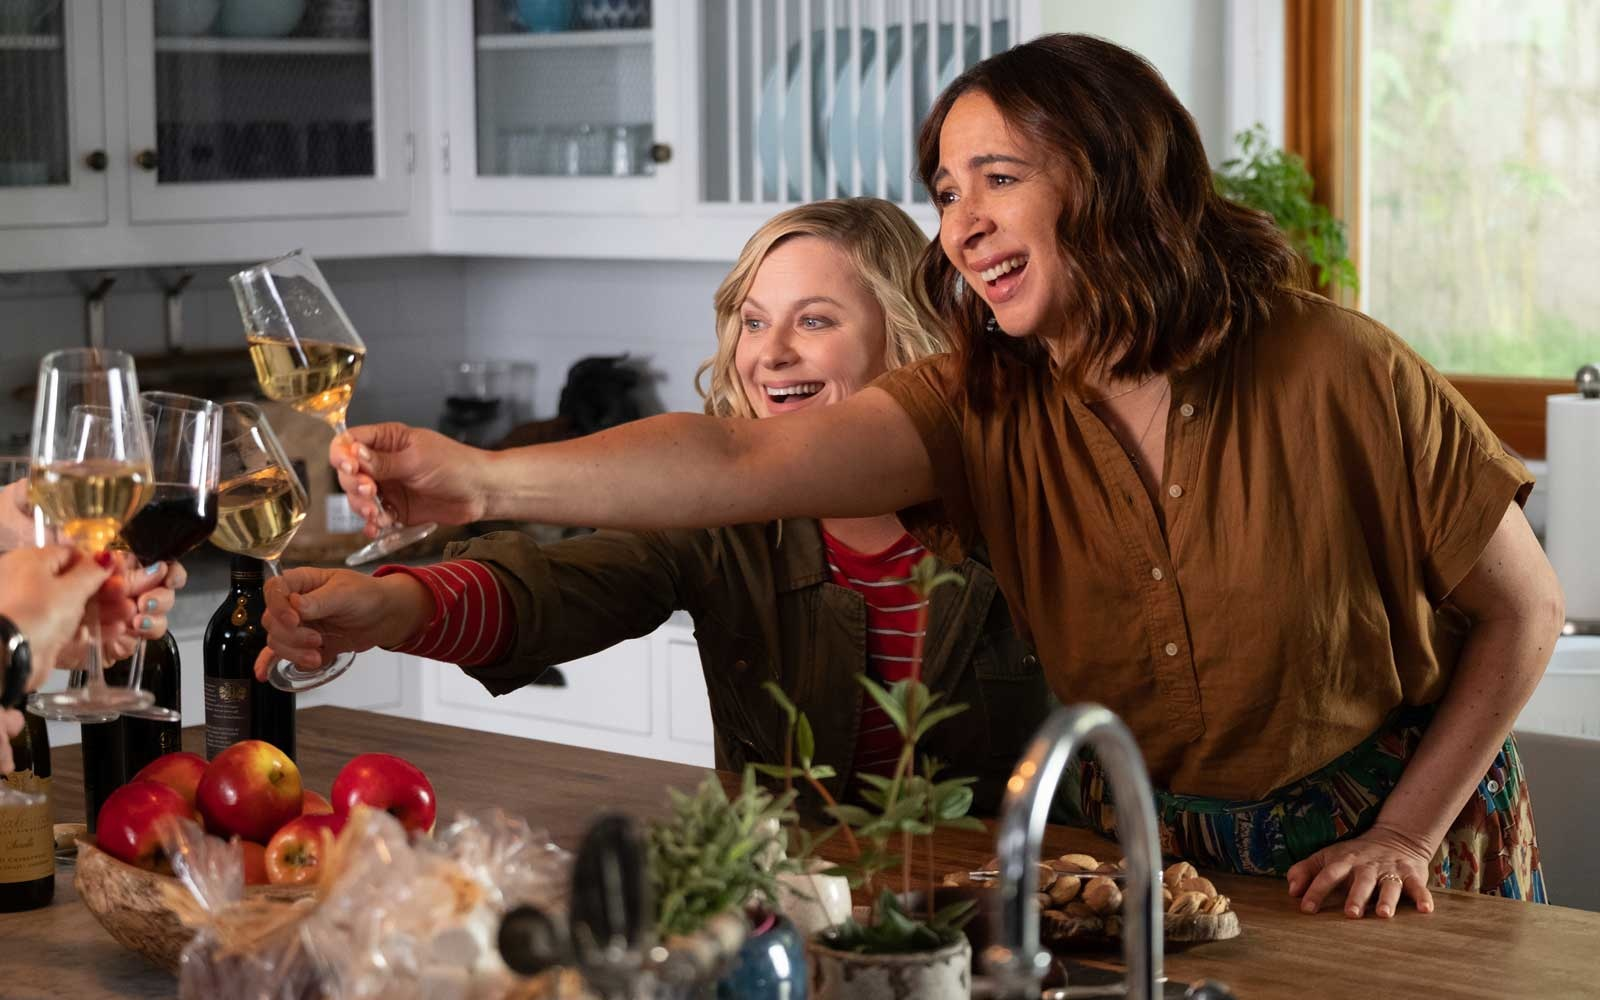 Poehler, Dratch, Rudolph, Fey in Fun Trailer for 'Wine Country' Comedy